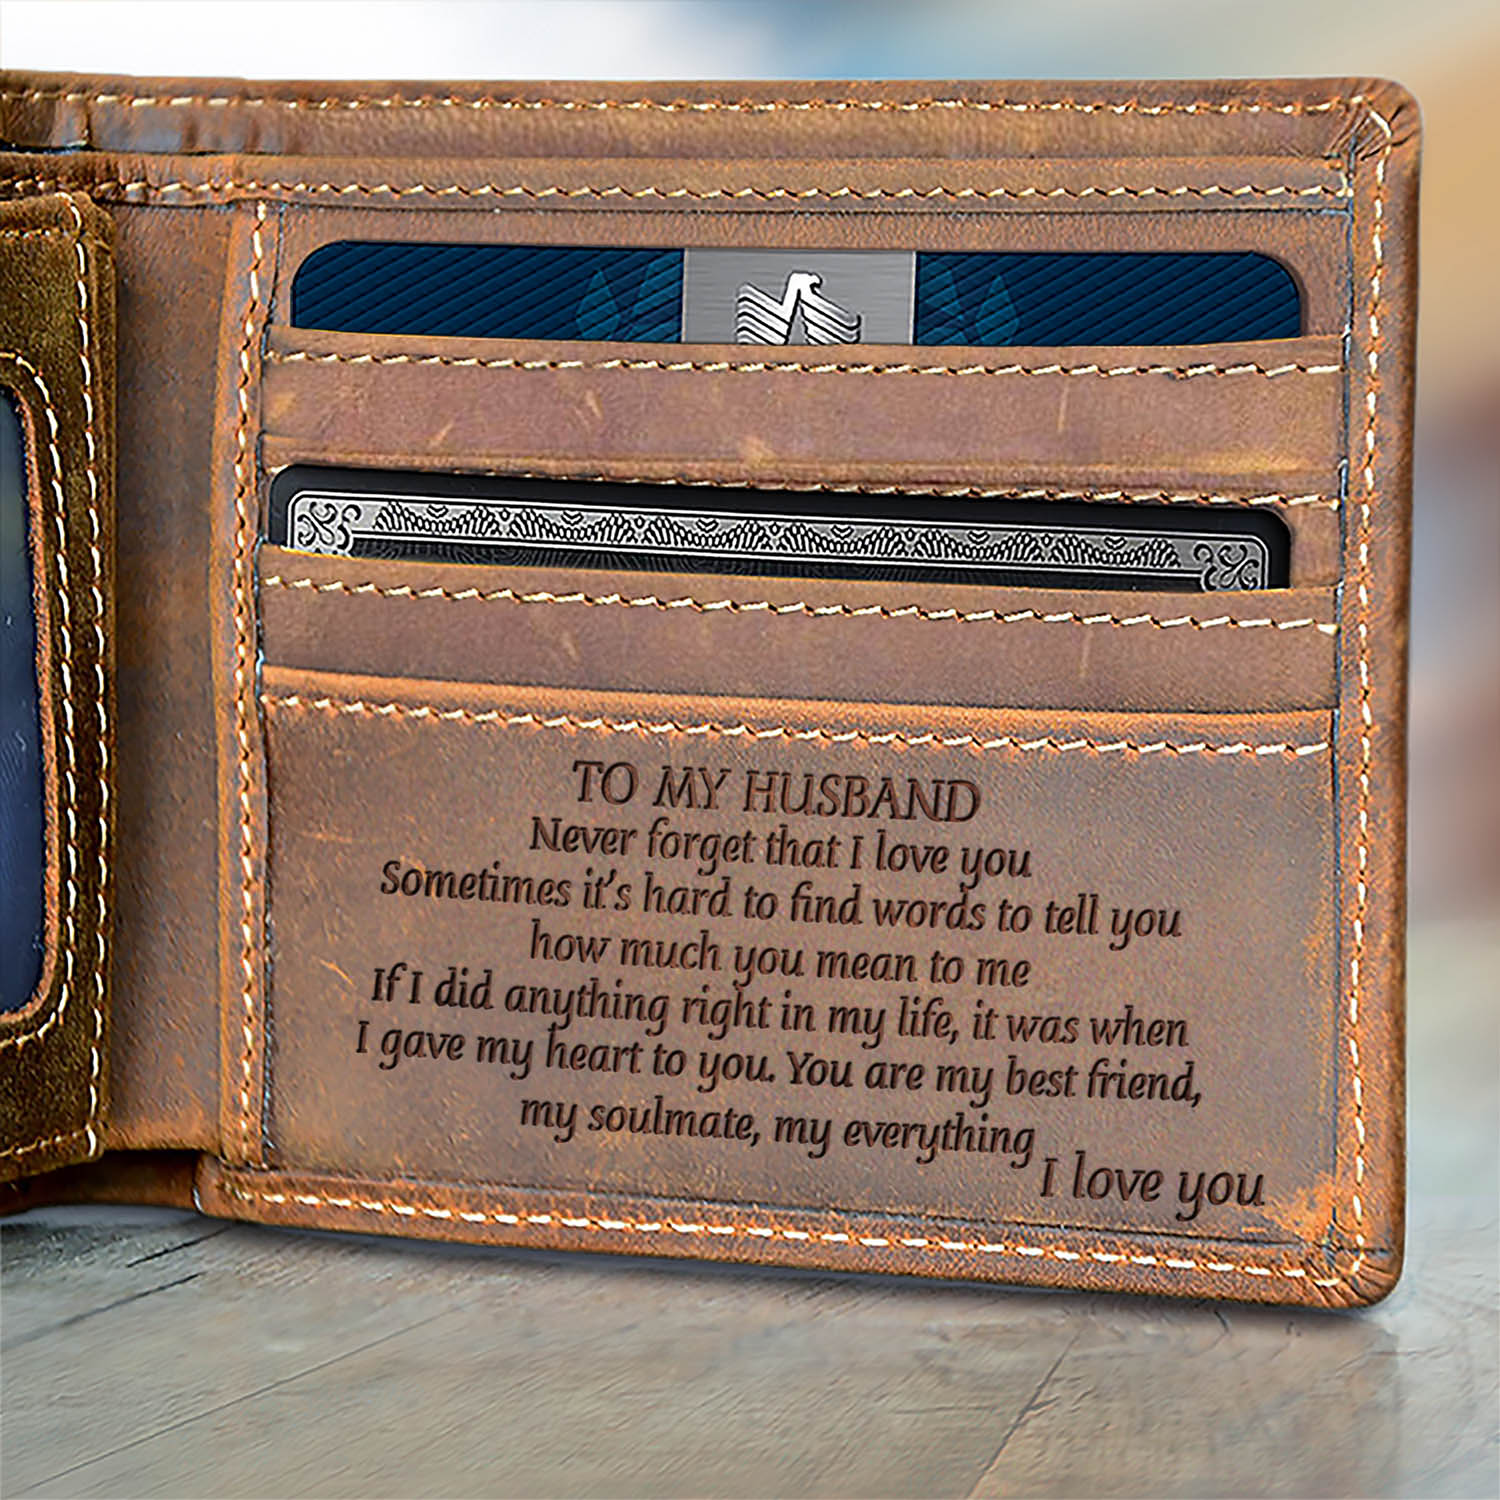 V1705 Youre My Everything For Husband Engraved Wallet Chloros